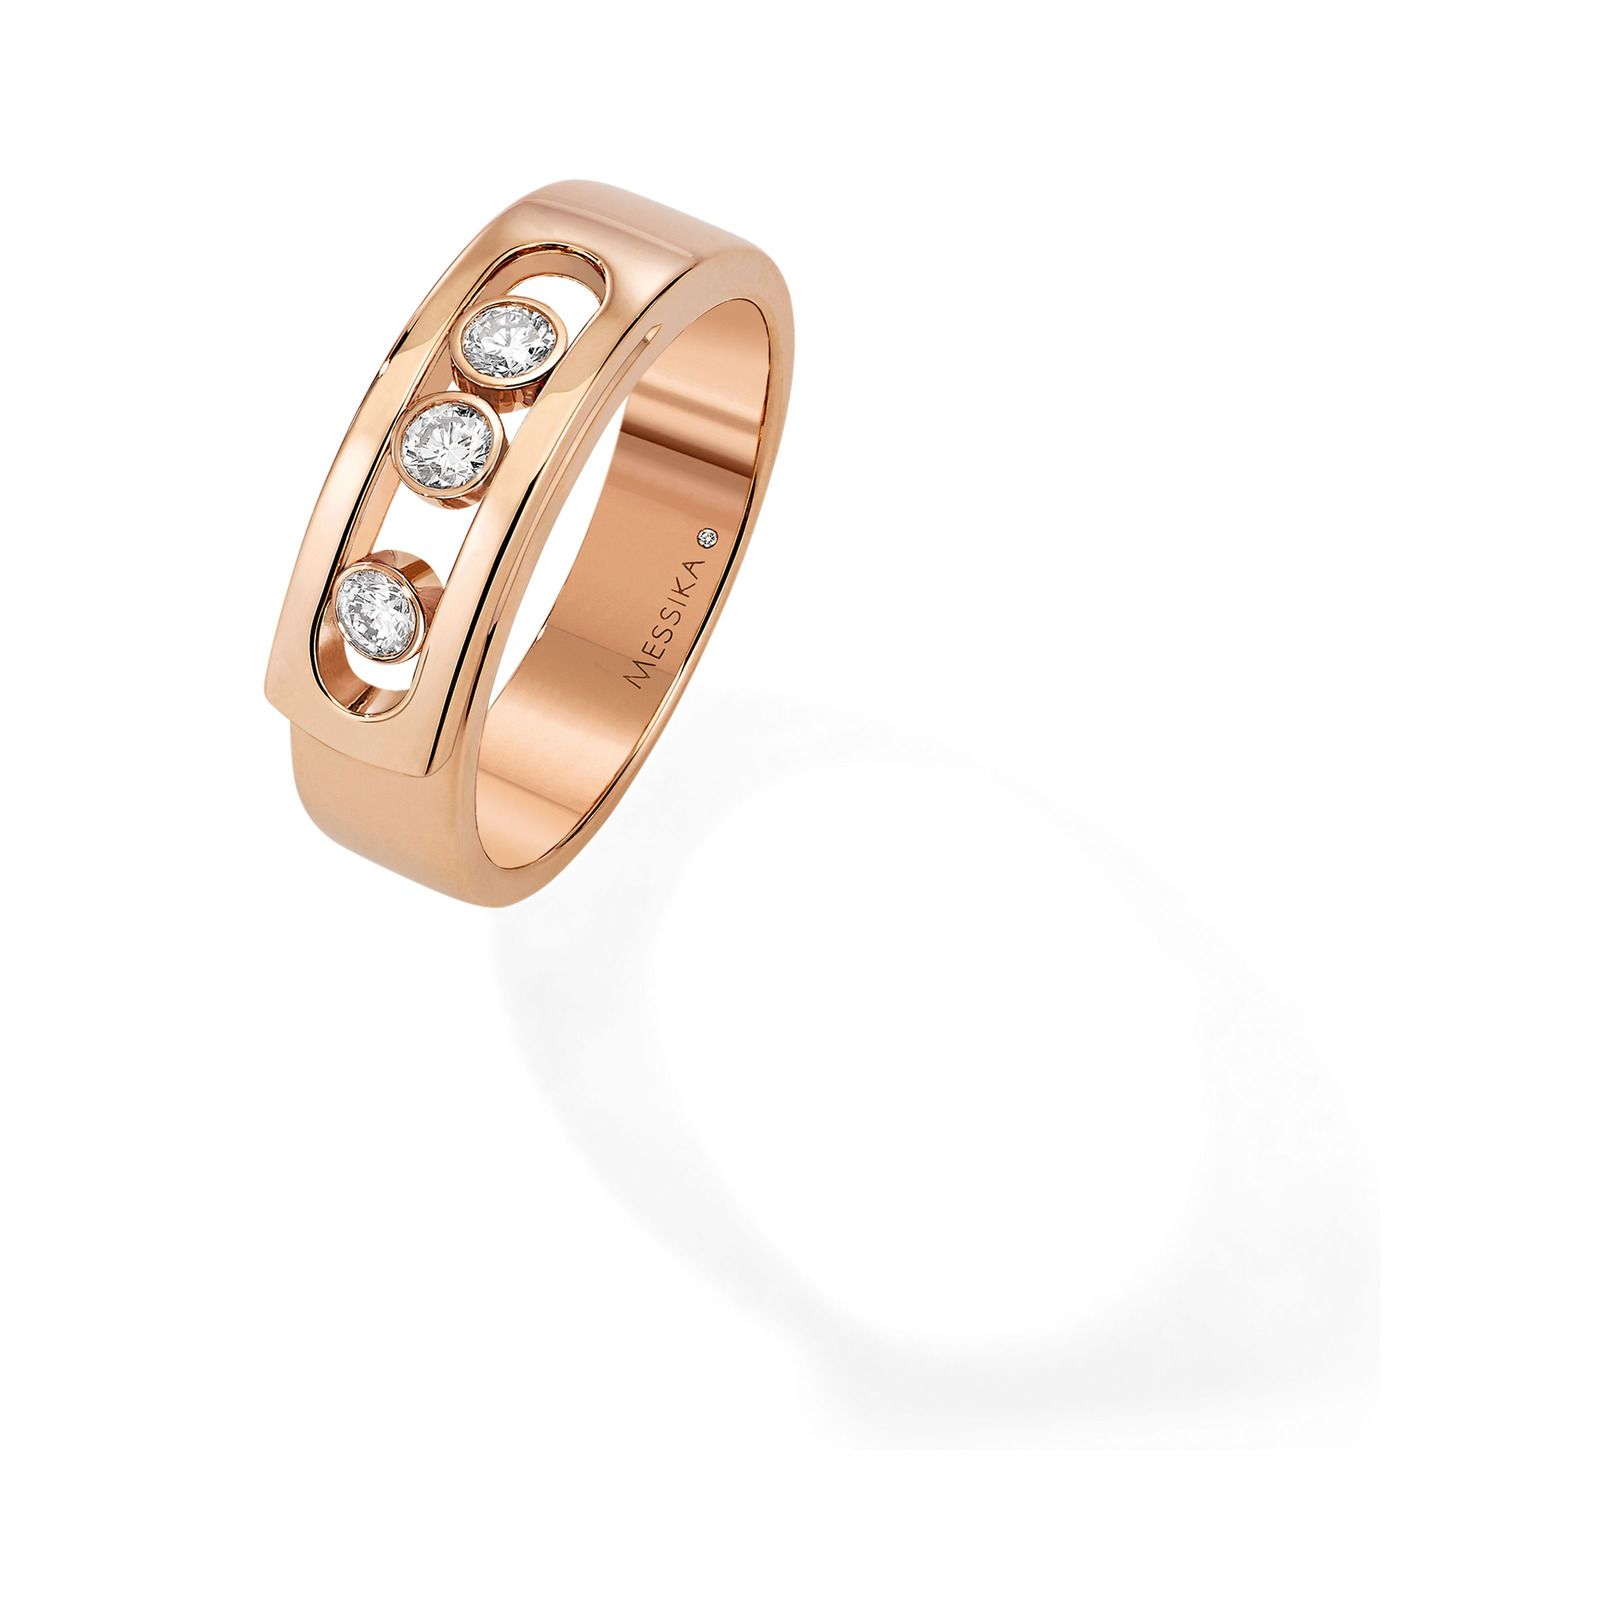 Messika 18ct Rose Gold Move Diamond Ring Rings Jewellery